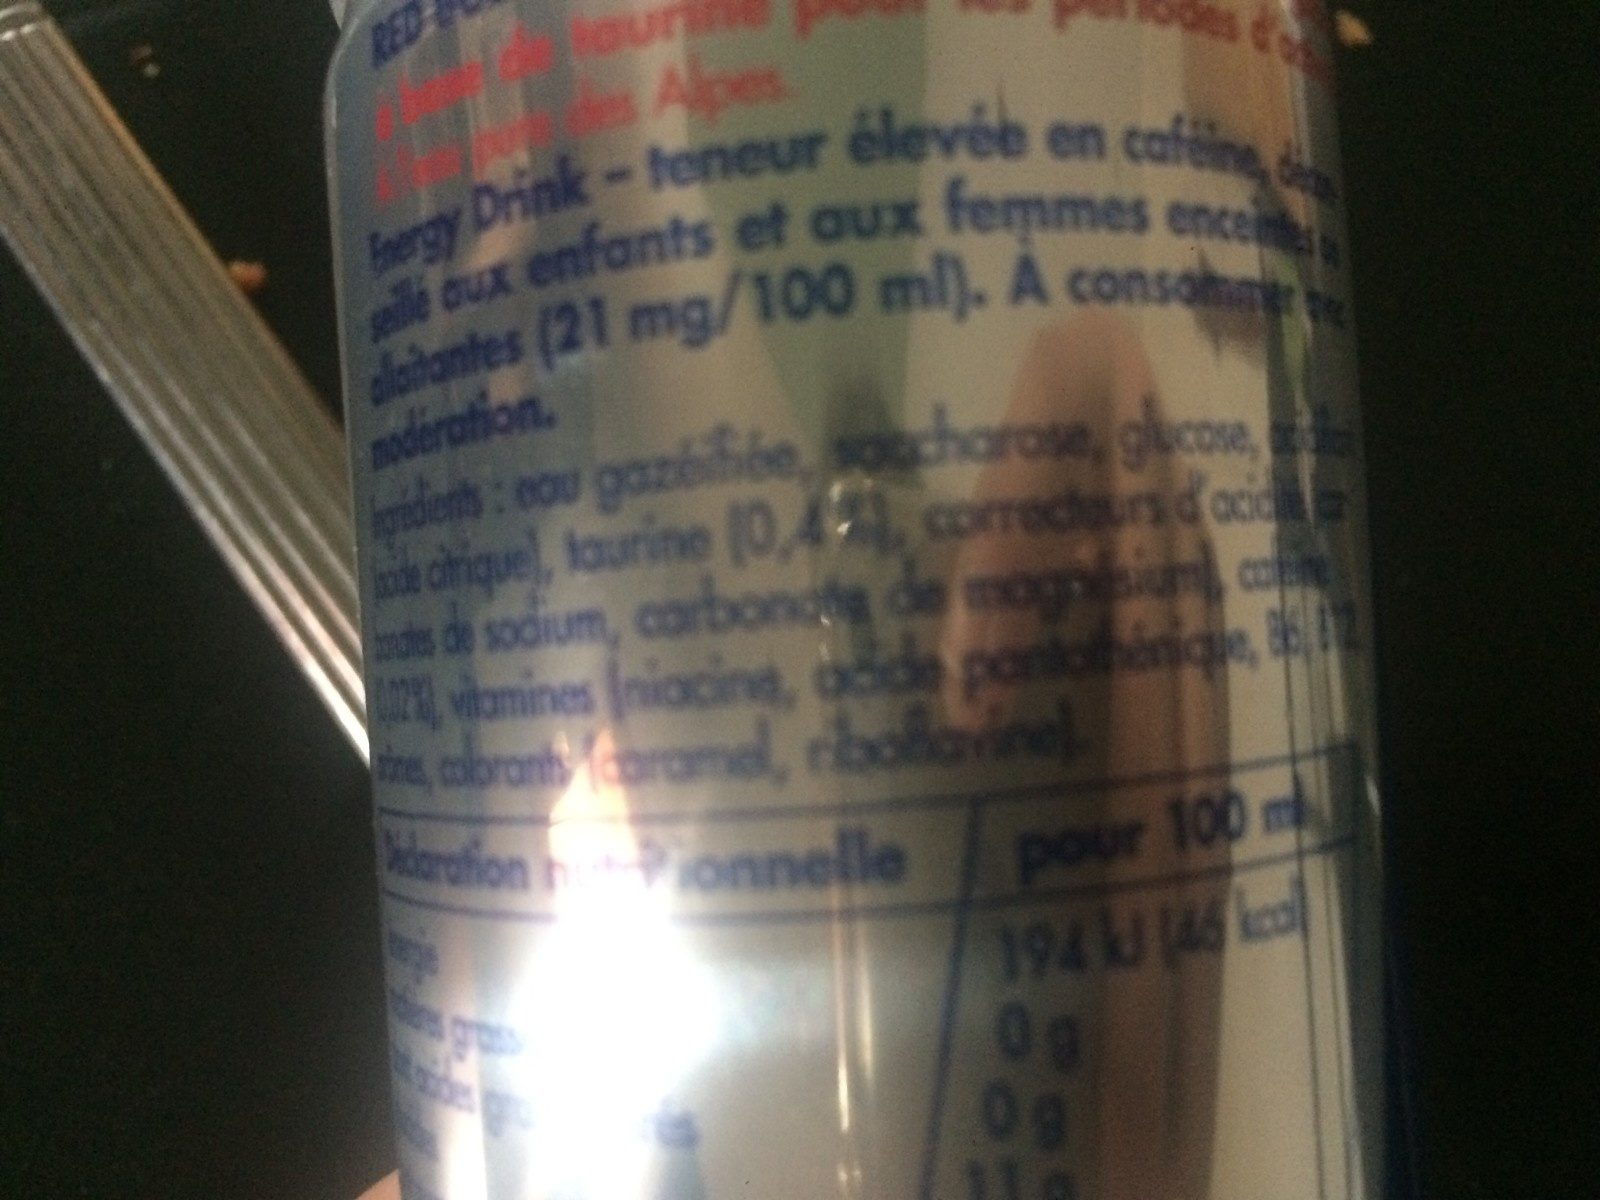 Red Bull Energy Drink - Ingredients